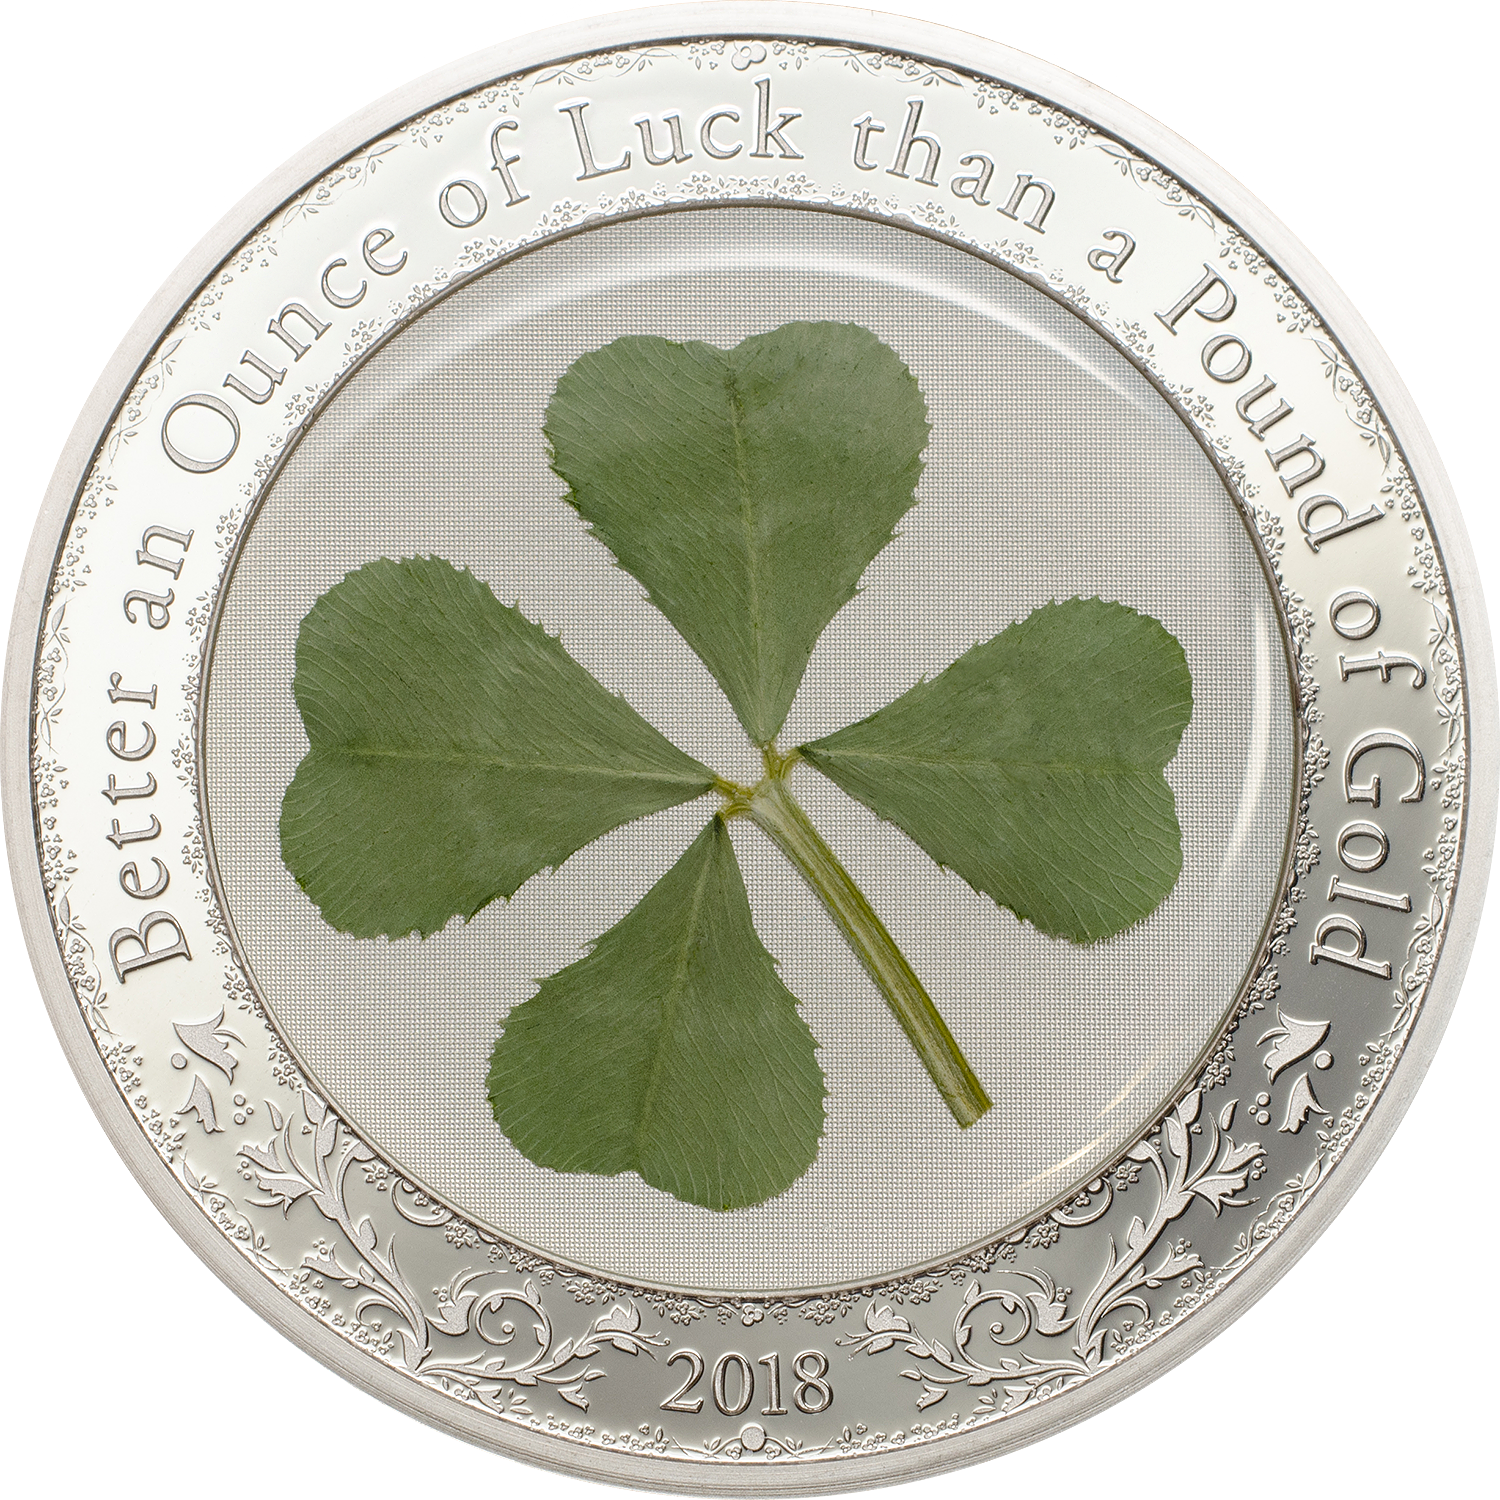 2018 1 Oz Palau Ounce Of Luck 999 Silver Proof Coin Lpm